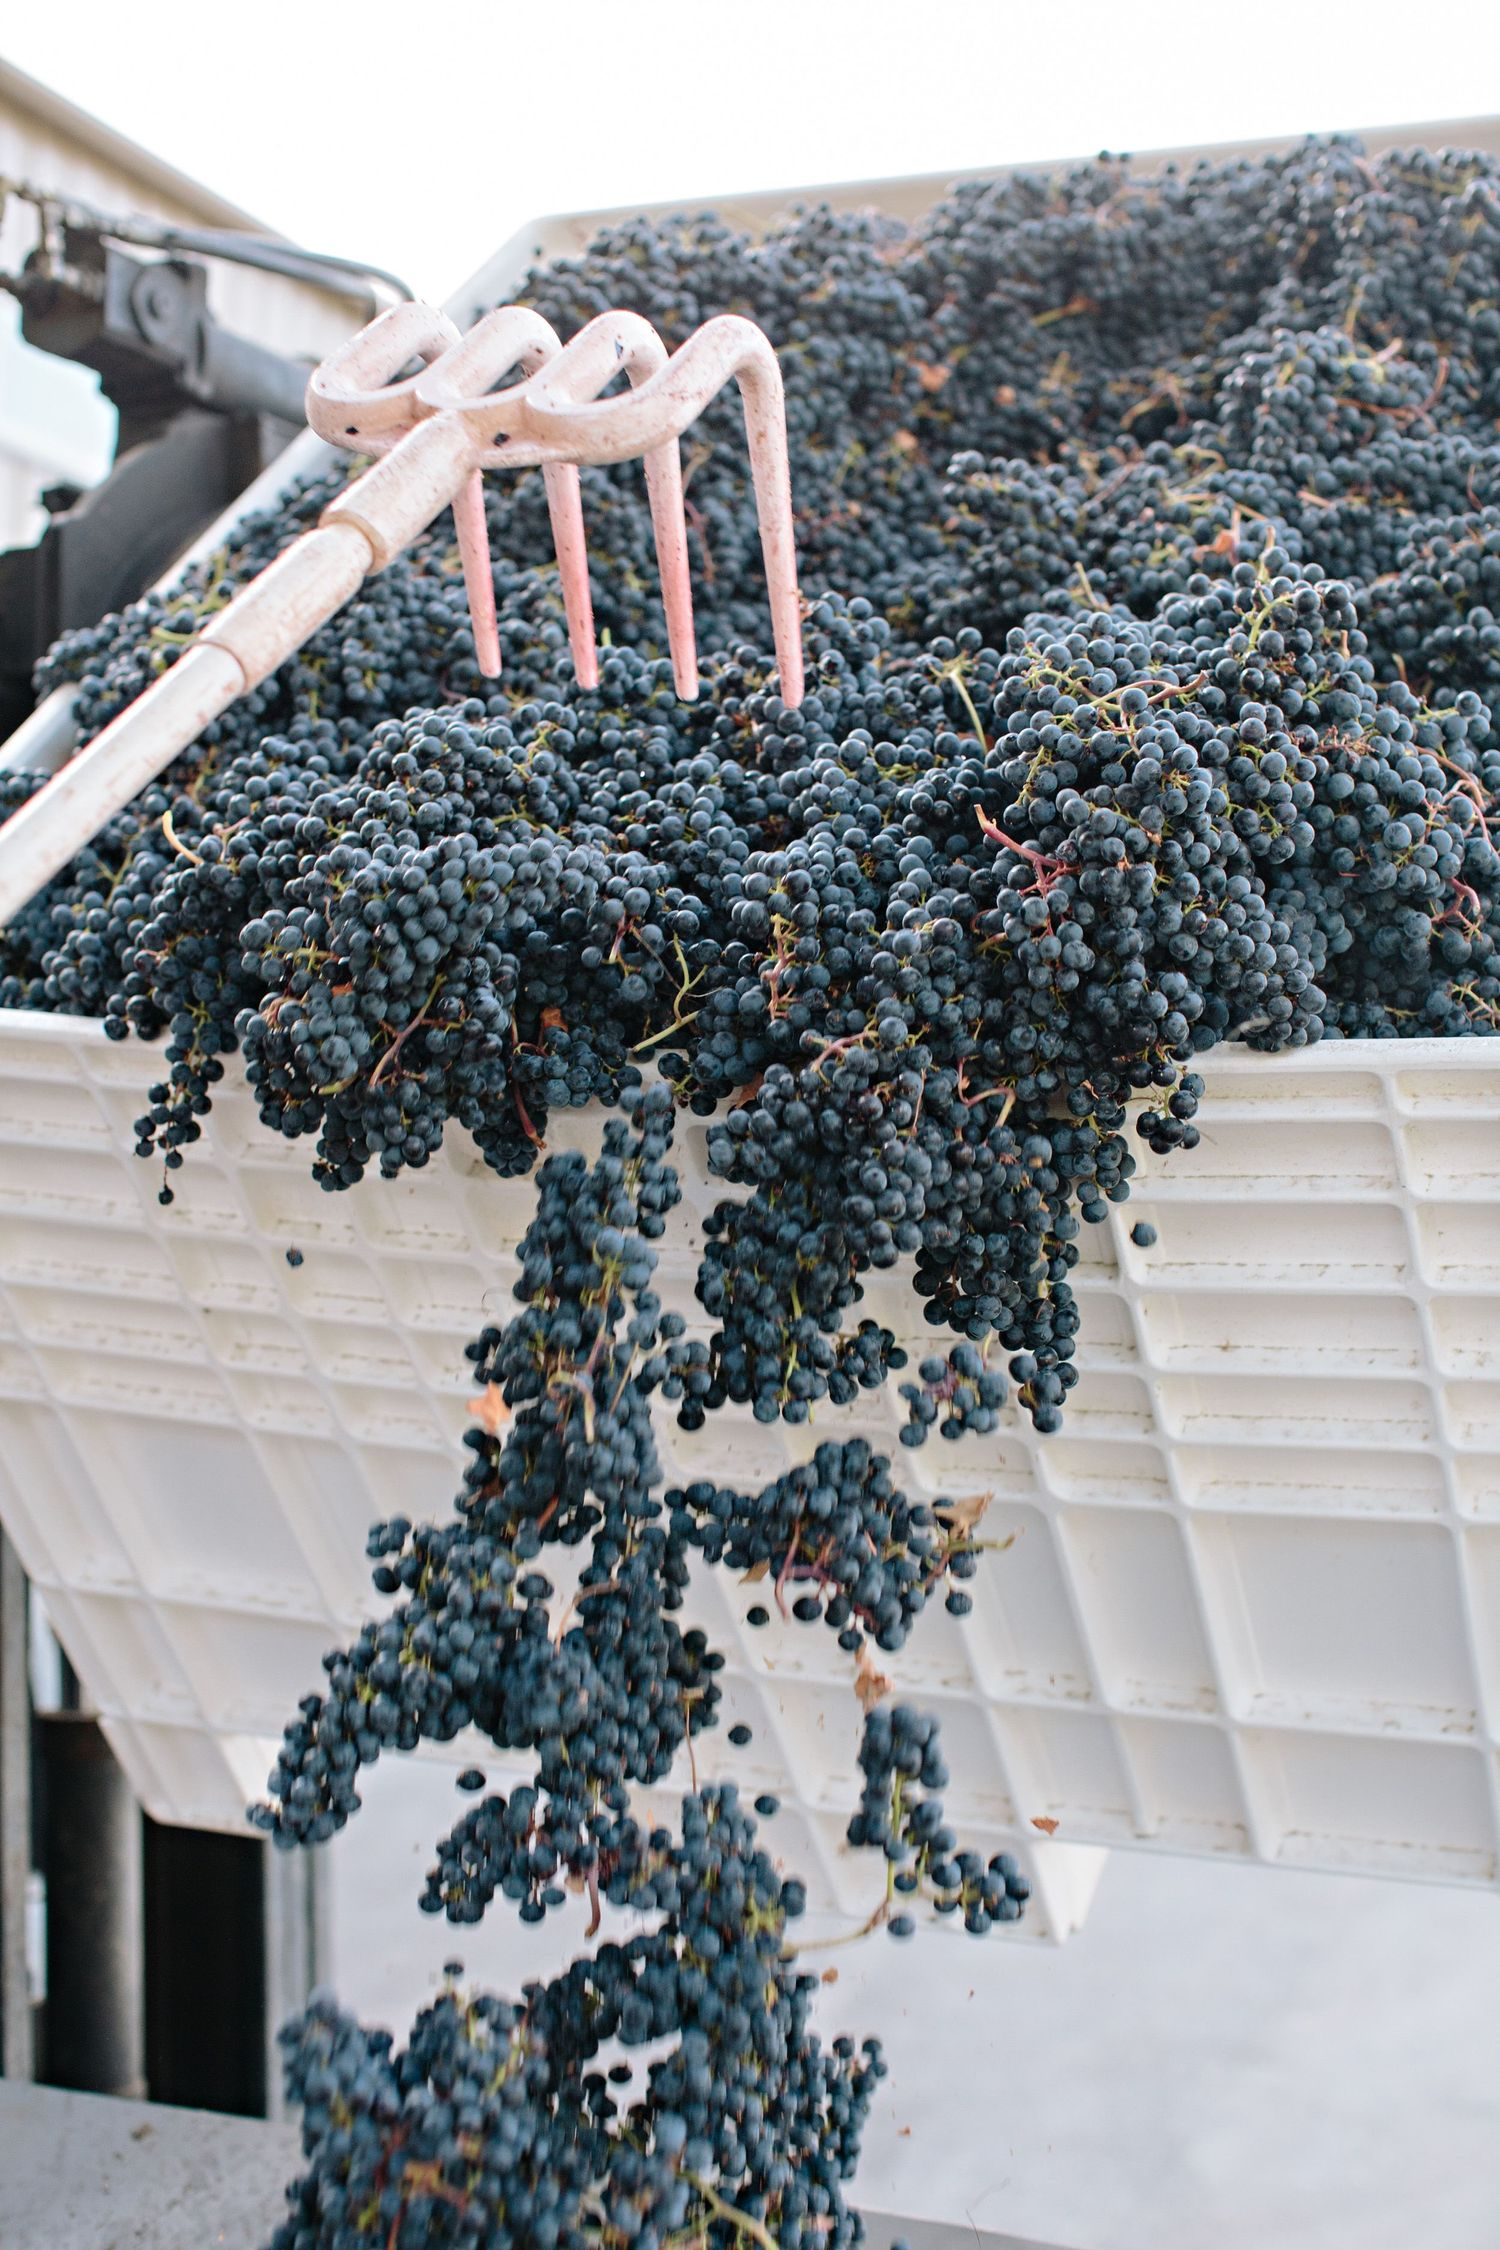 grapes falling at harvest